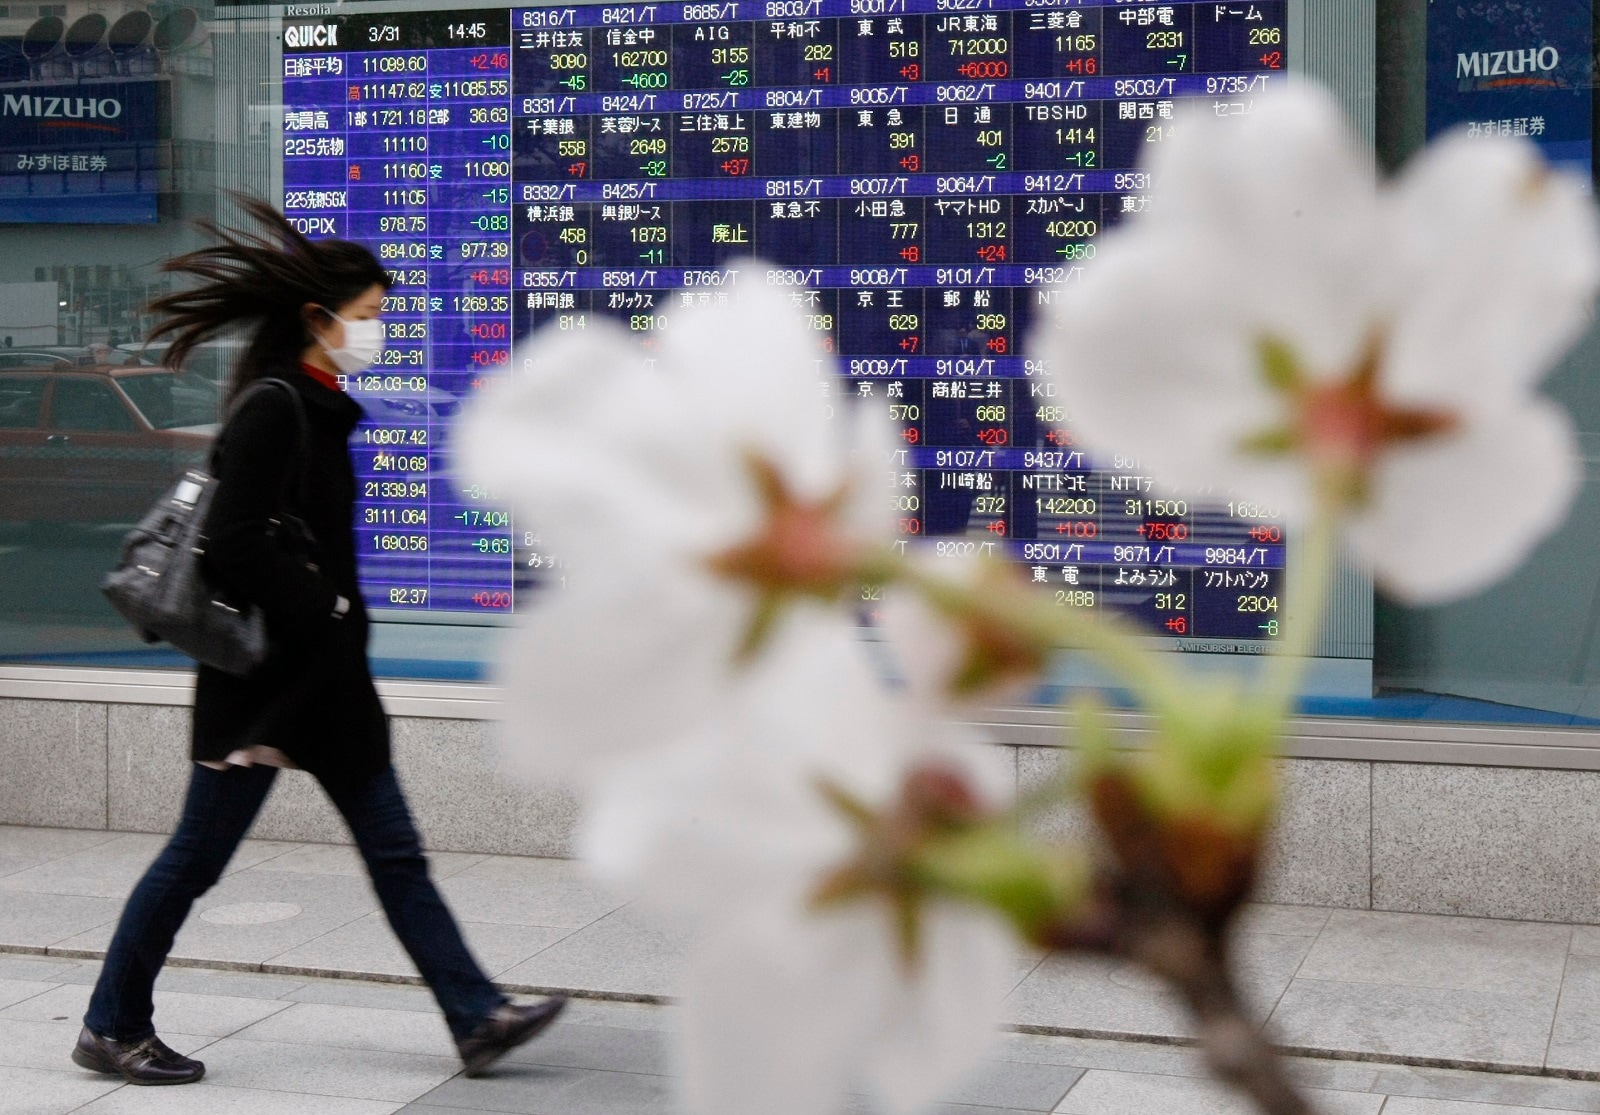 1. Asia: Asian shares skidded on Tuesday after U.S. President Donald Trump stunned markets with tariffs against Brazil and Argentina, recharging fears about global trade tensions, while weak U.S. factory data added to the investor gloom. MSCI's broadest index of Asia-Pacific shares outside Japan was down 0.45 percent in early trade, with Australian shares dropping nearly 2 percent, on track for their worst day in two months. Japan's Nikkei shed 1.1 percent.(Image: Reuters)